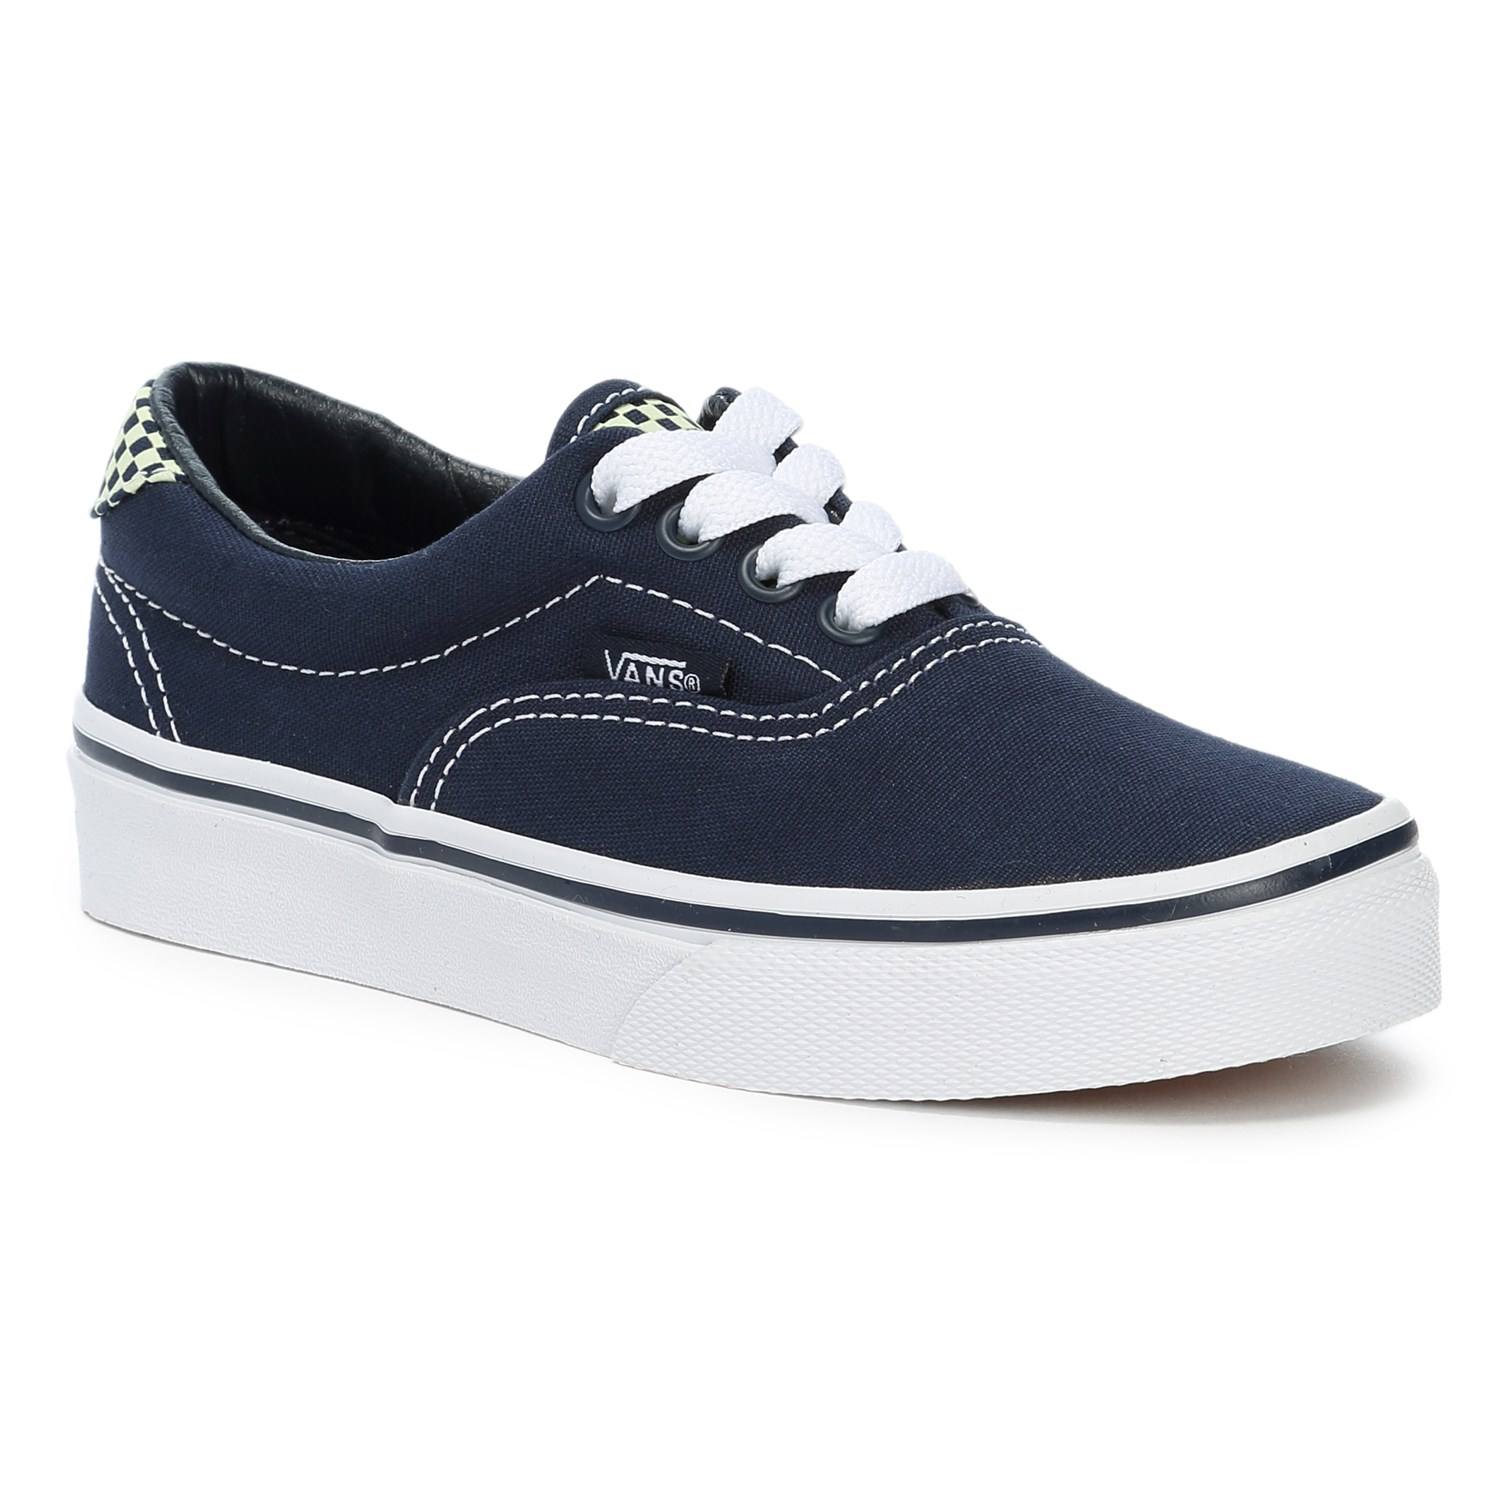 Vans Era Shoes - Boys' | evo outlet